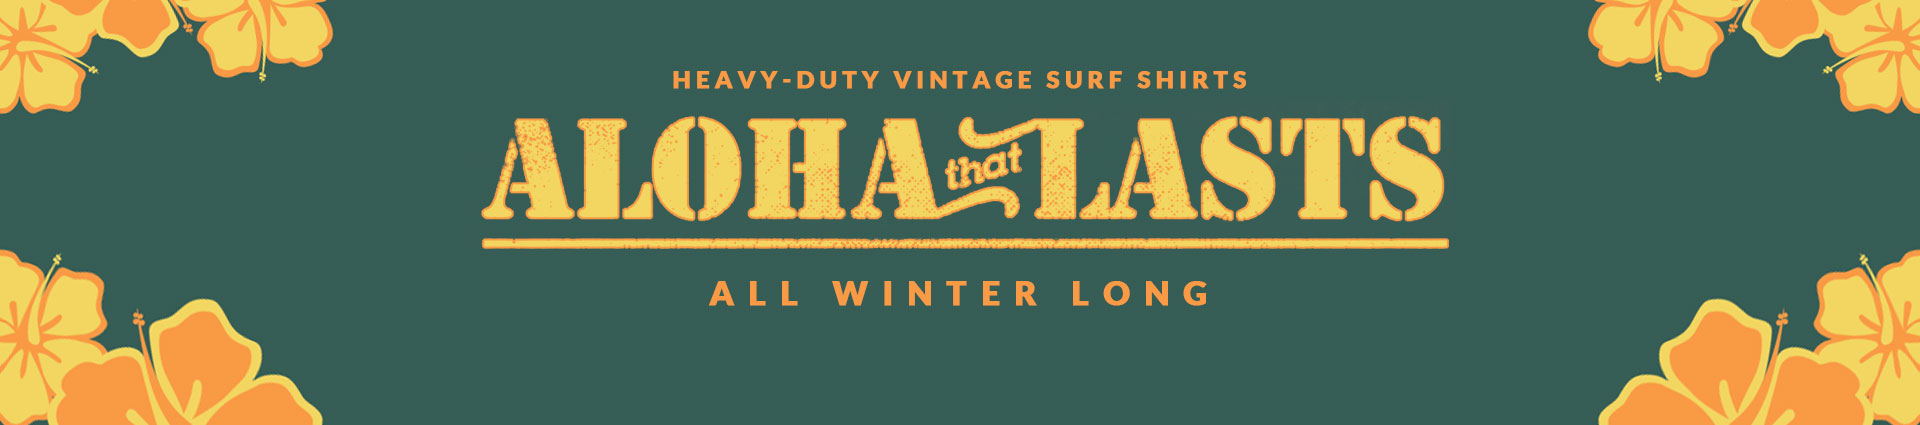 Heavy Duty Vintage Surf Shirts for Winter